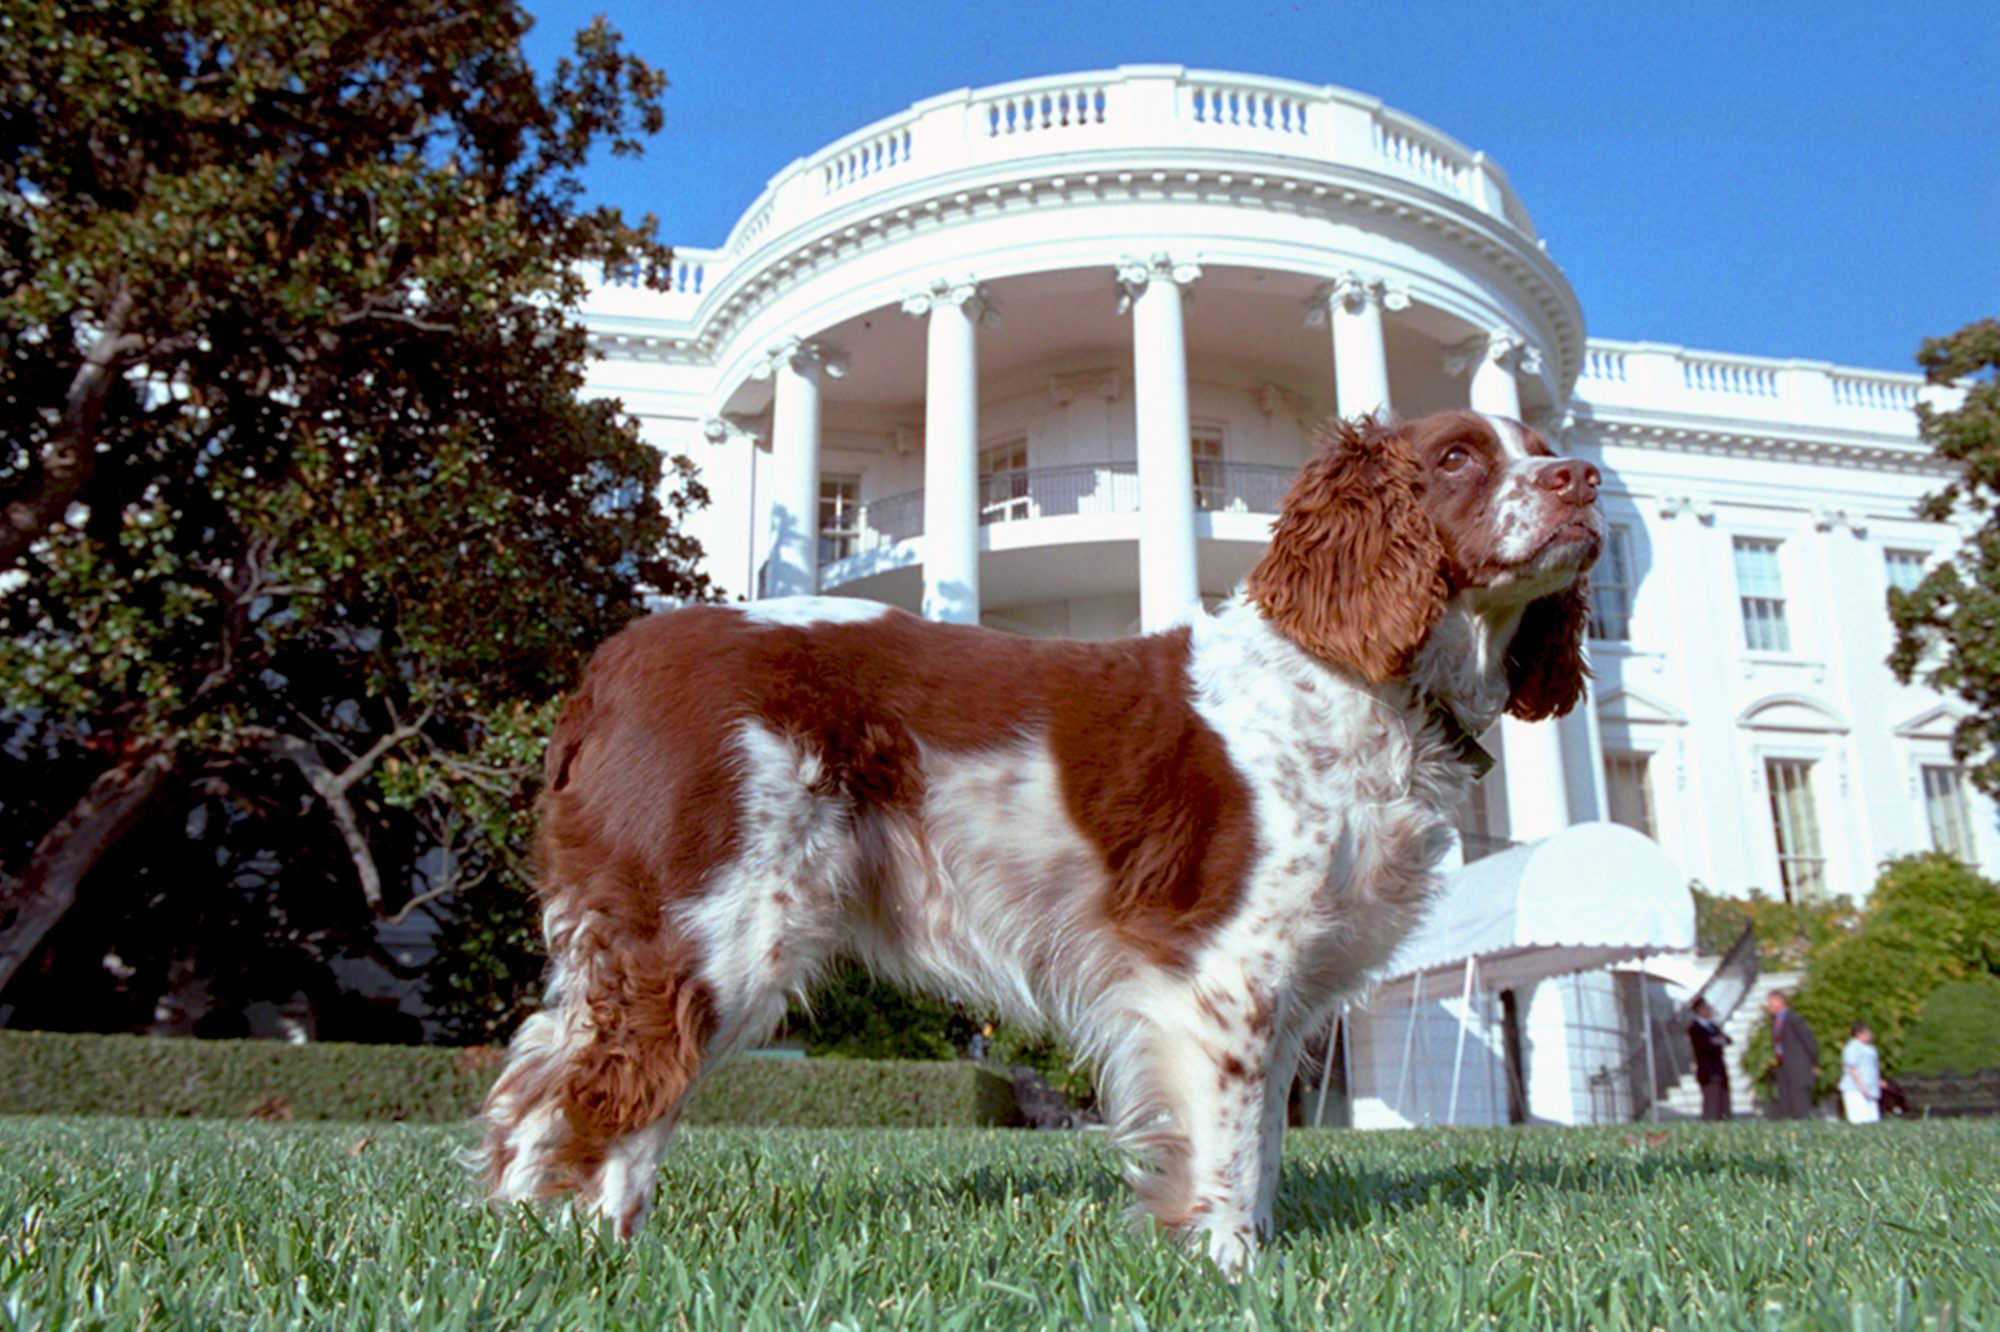 Photograph of President George W. Bush's spaniel standing on White House lawn